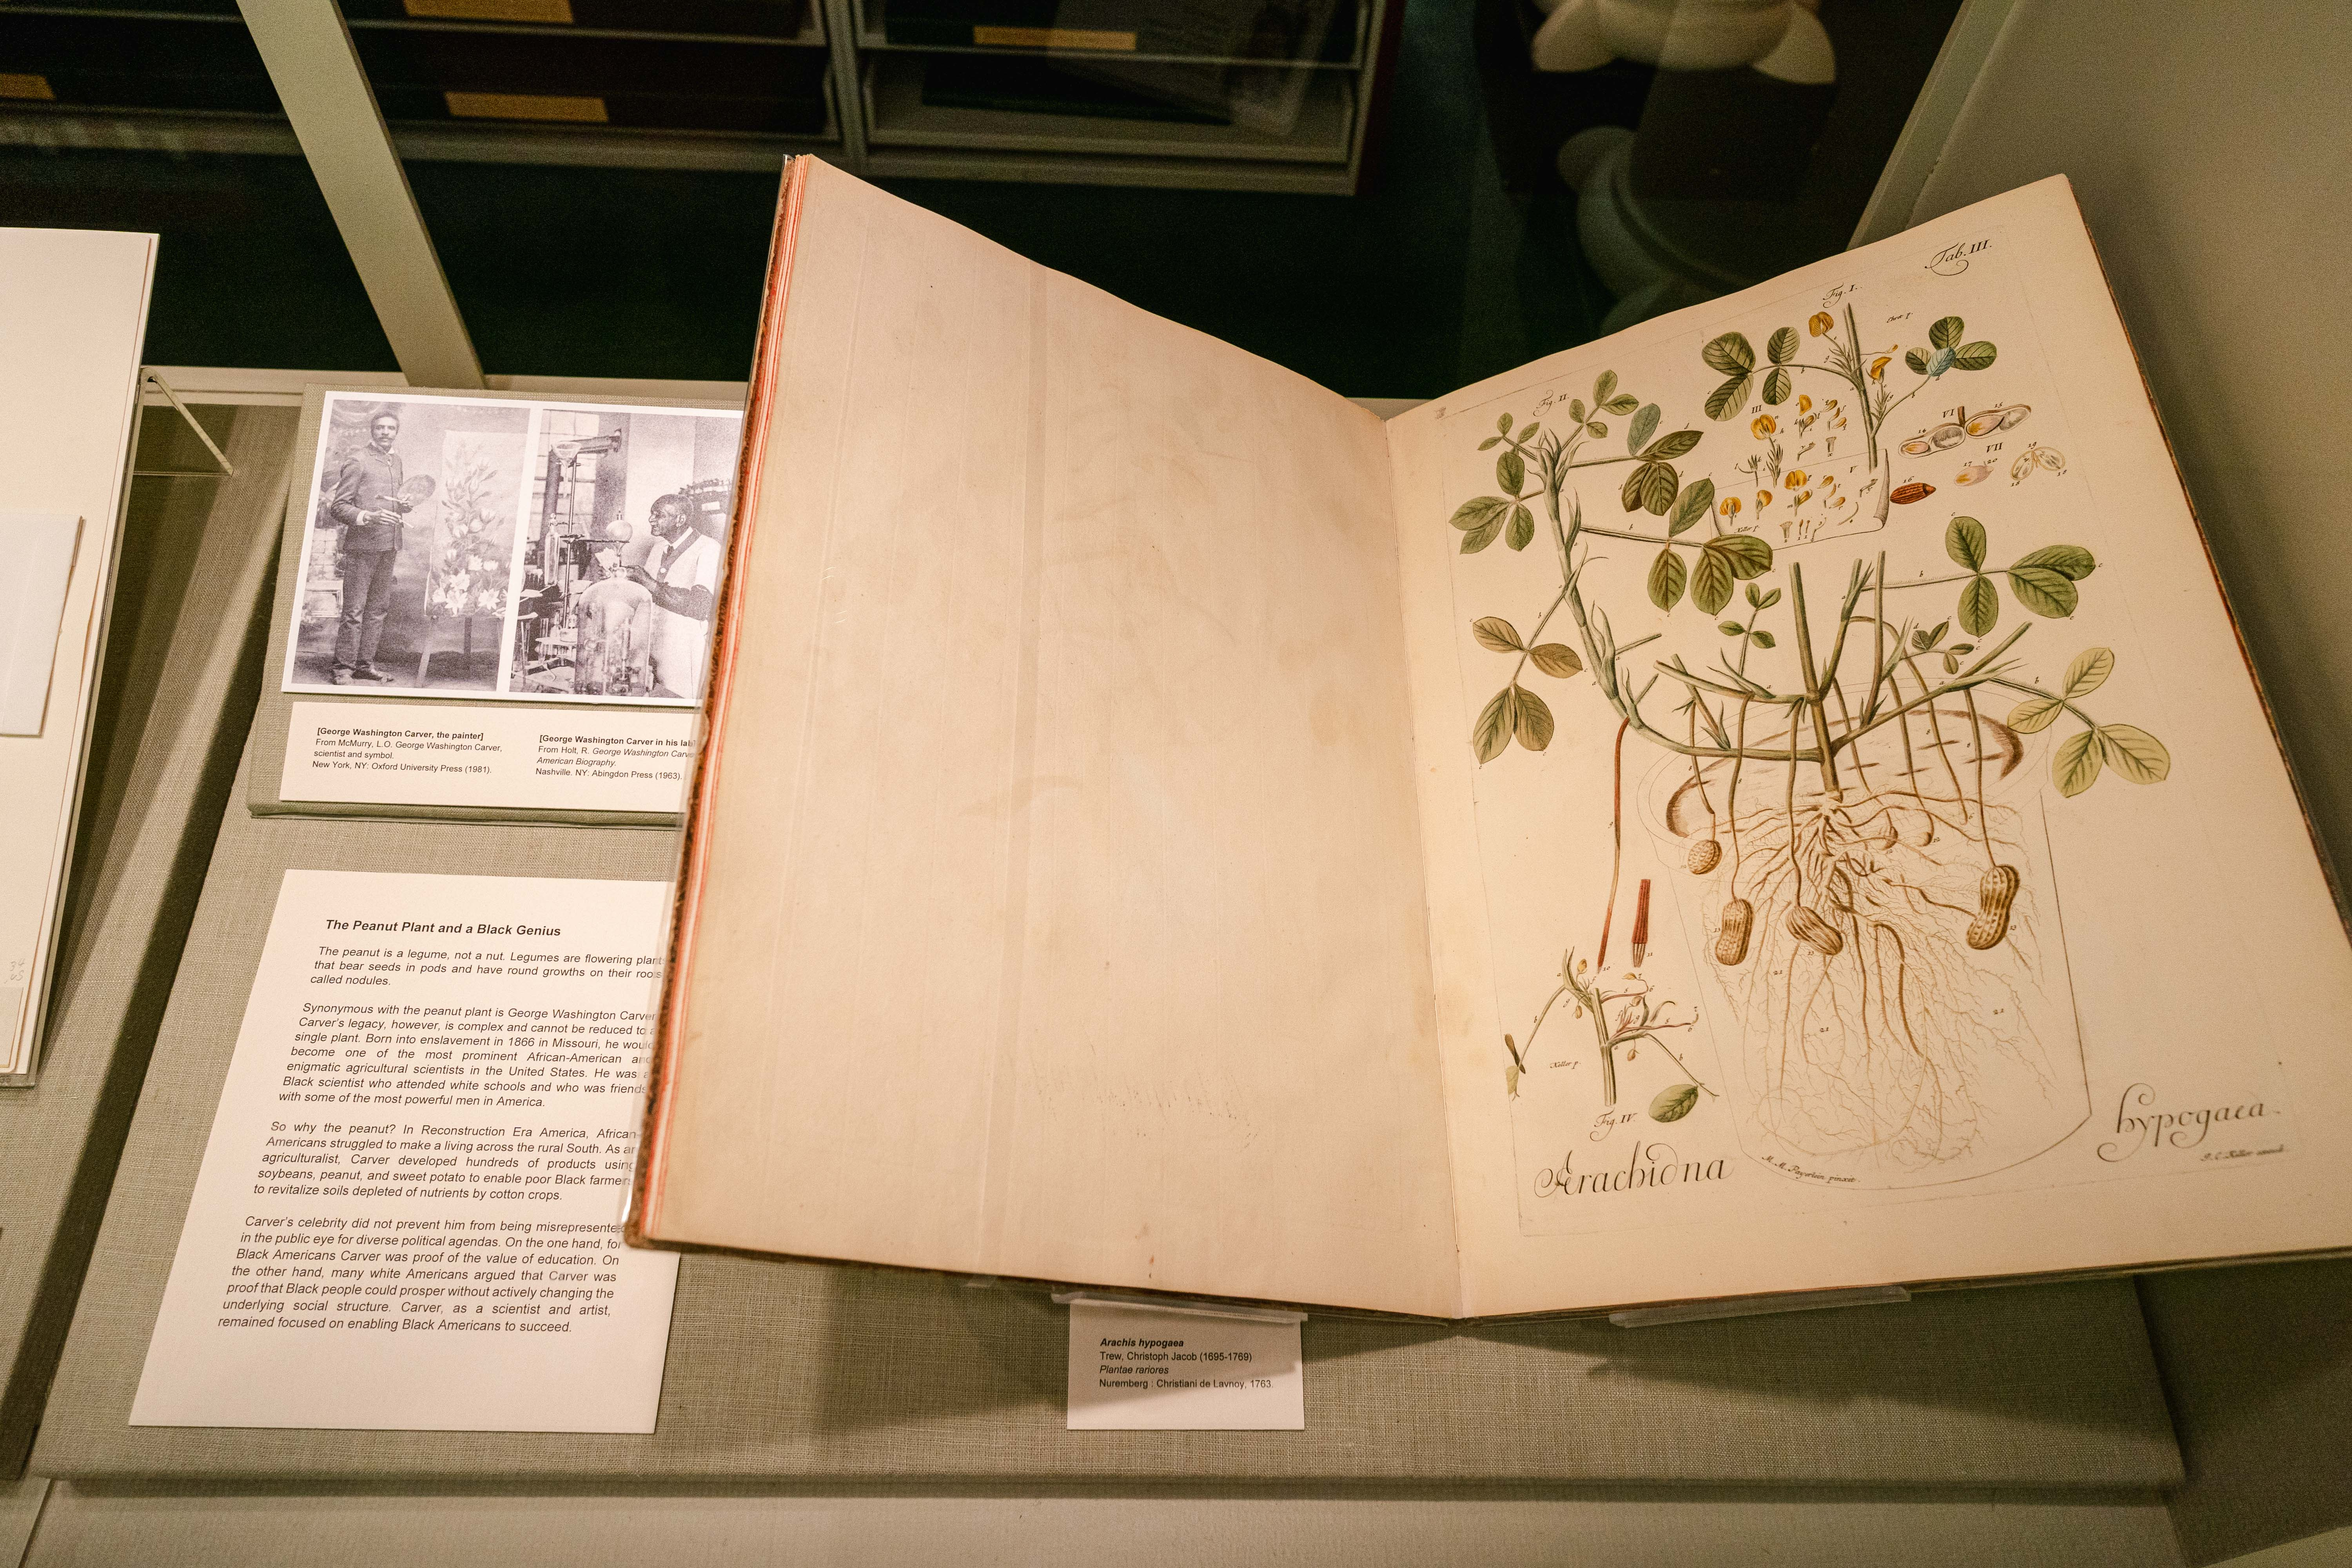 Rare Book Room: The Peanut Plant and a Black Genius